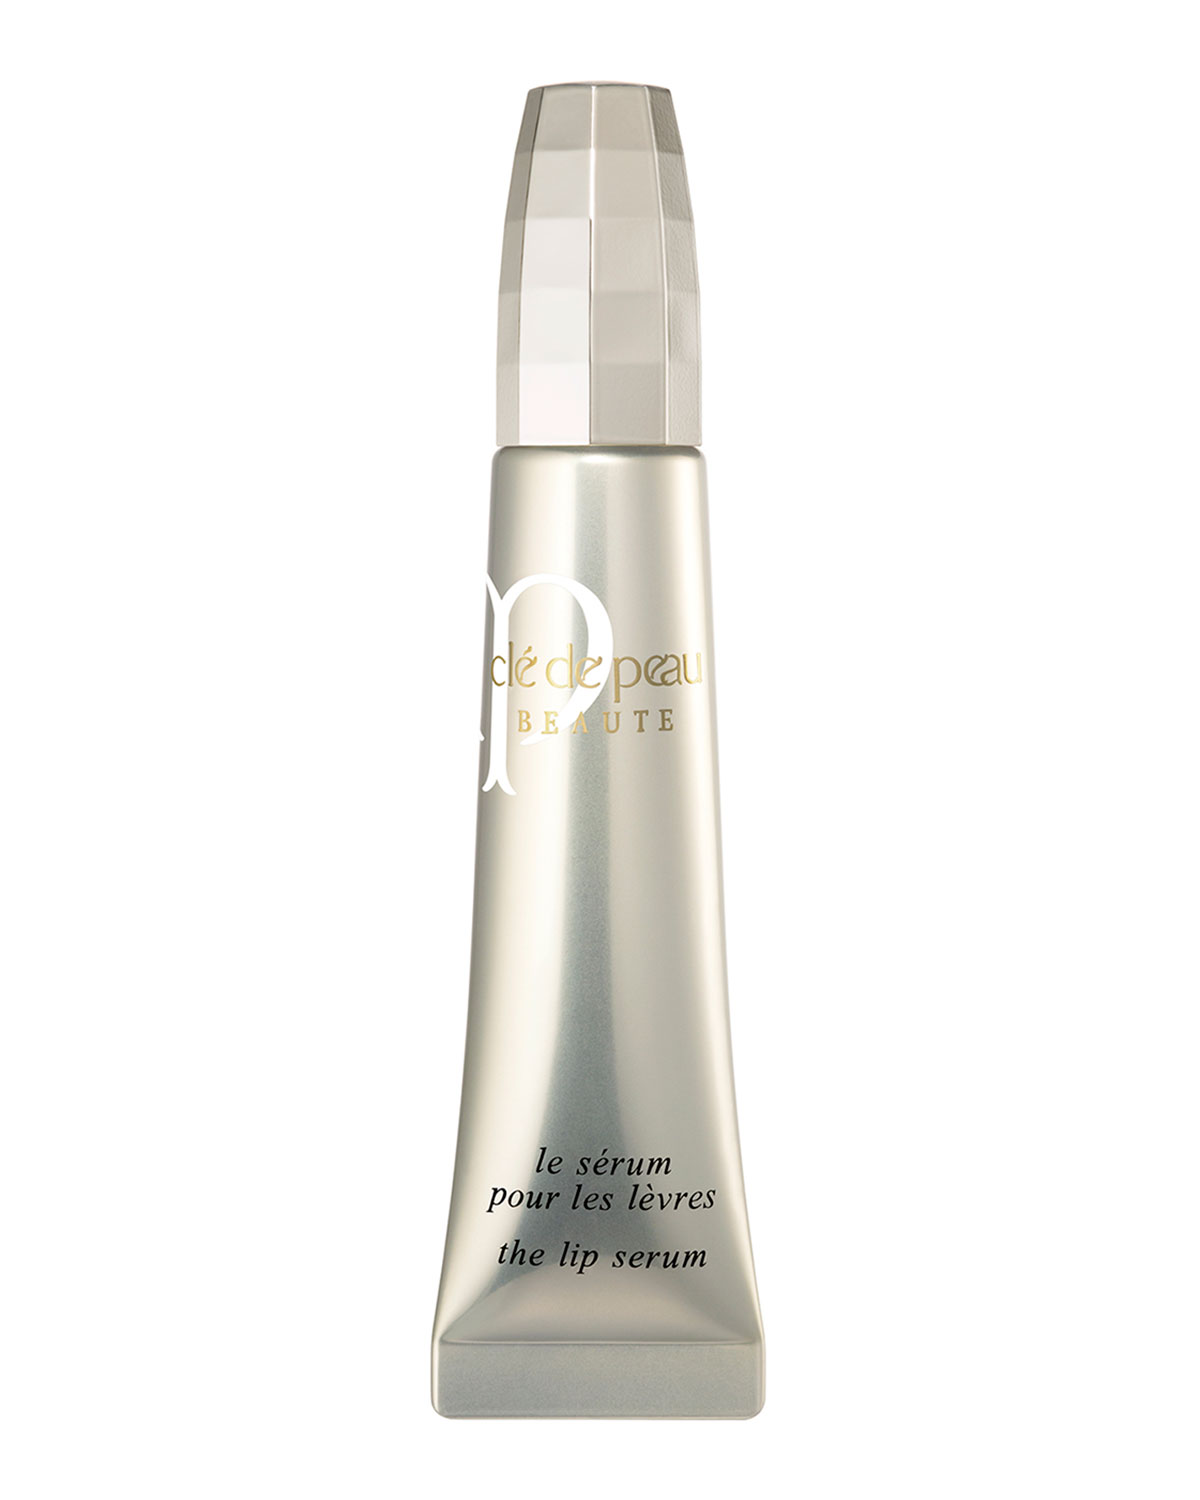 CLE DE PEAU Cle De Peau Beaute Lip Serum in Colorless